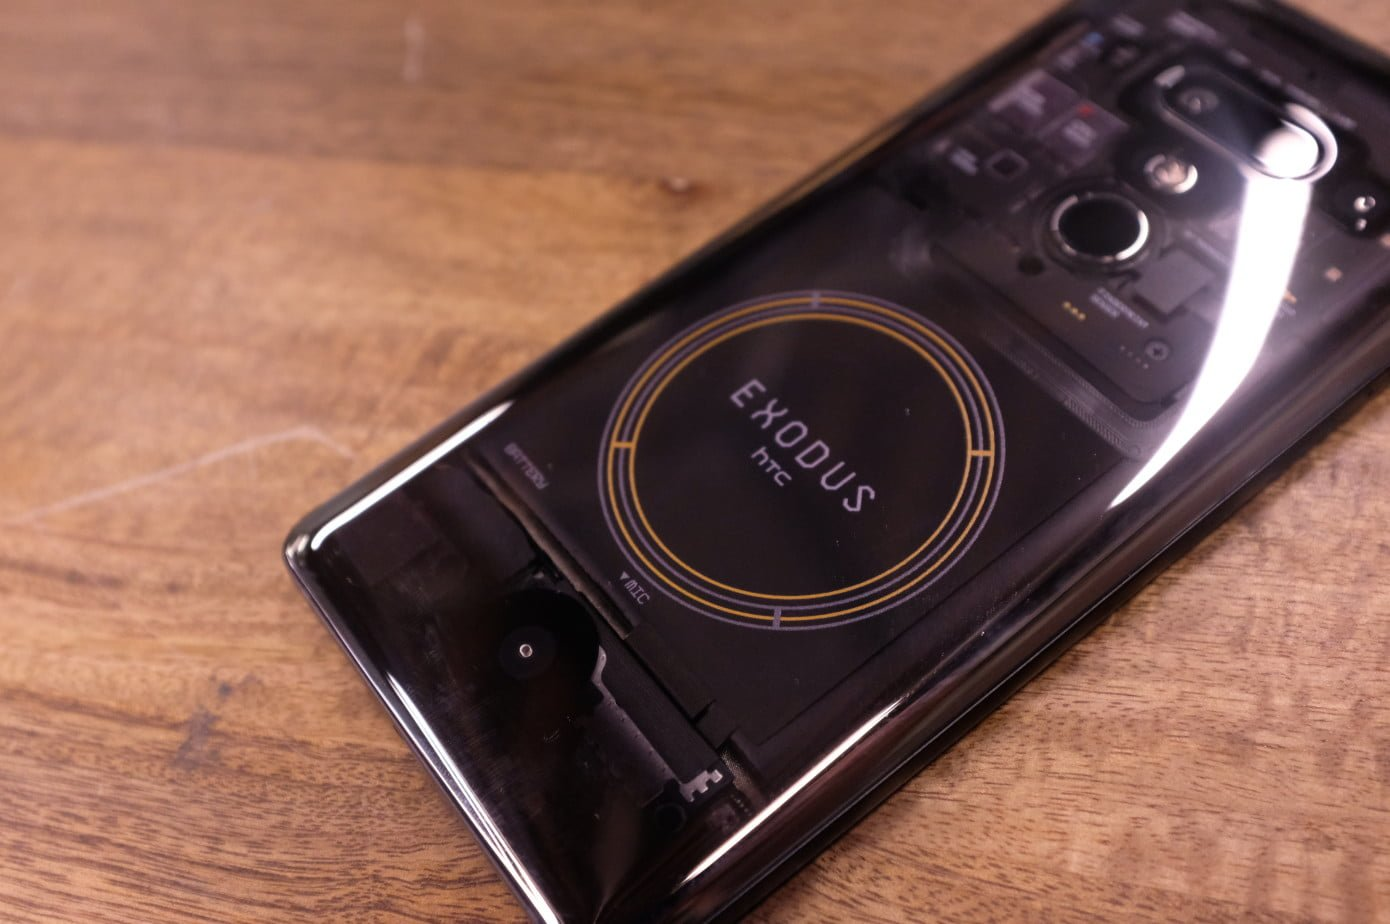 HTC's blockchain phone can now be purchased with fiat currency